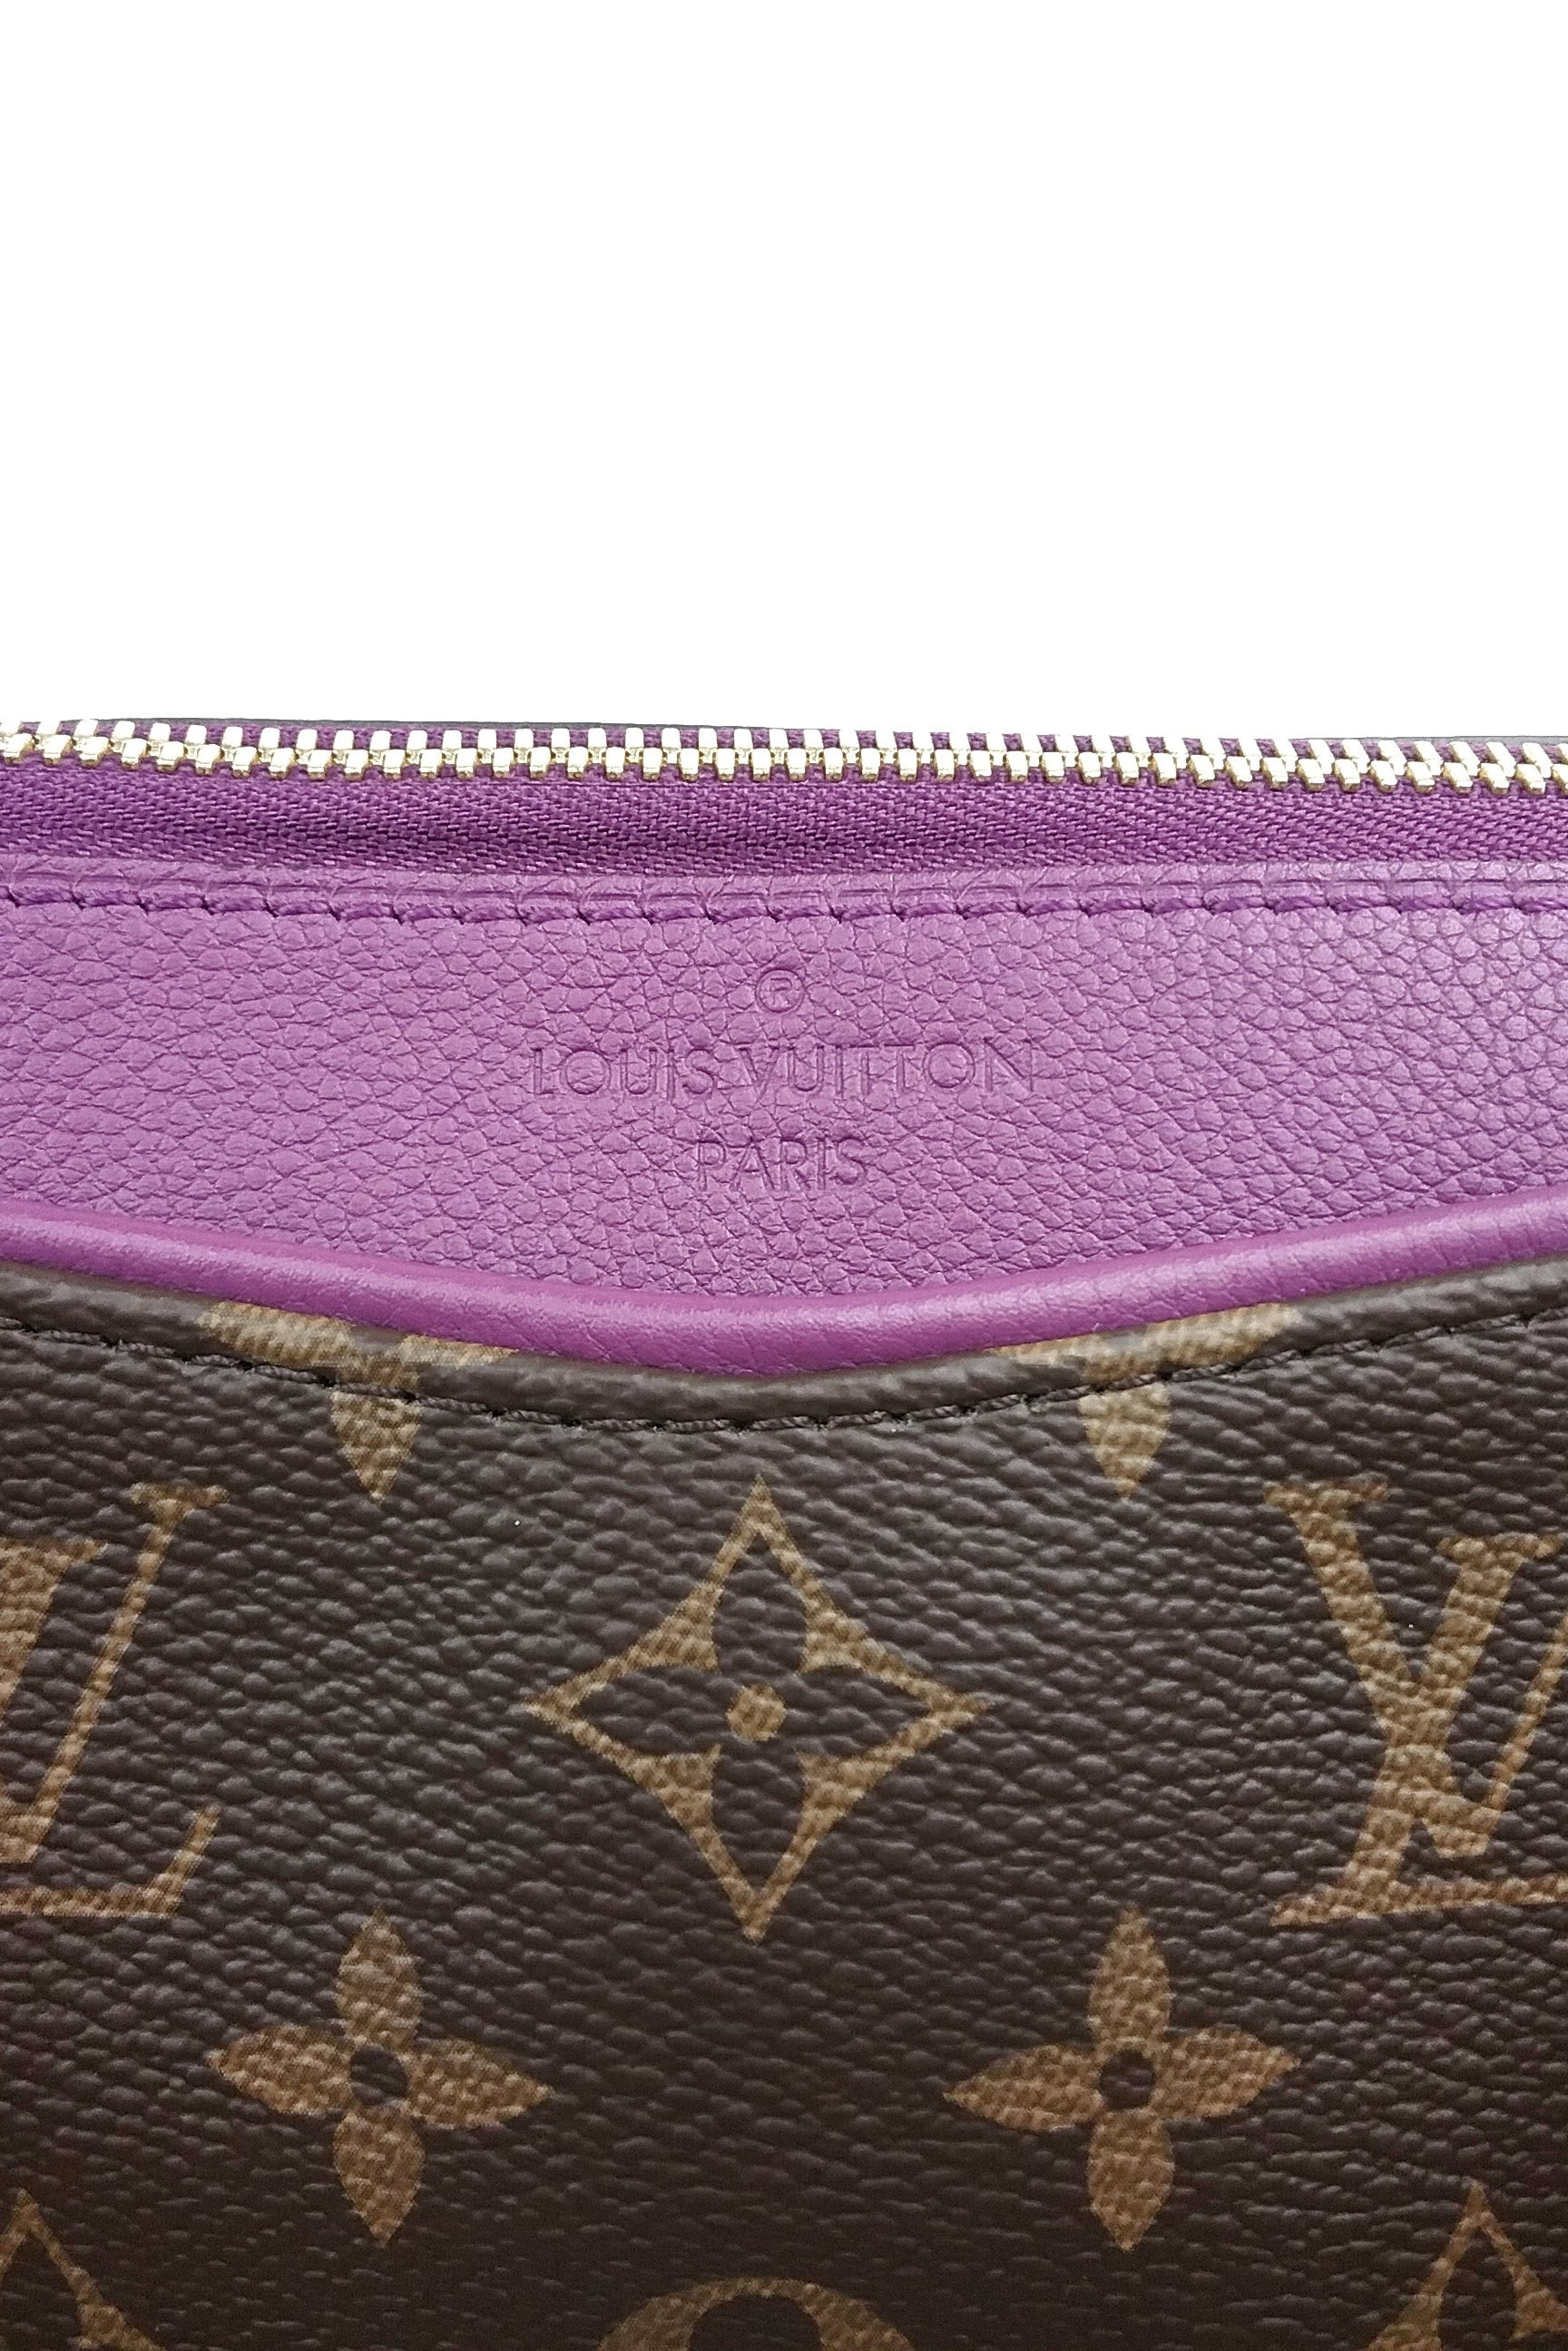 Monogram Pallas w/ Amethyst Leather Tote